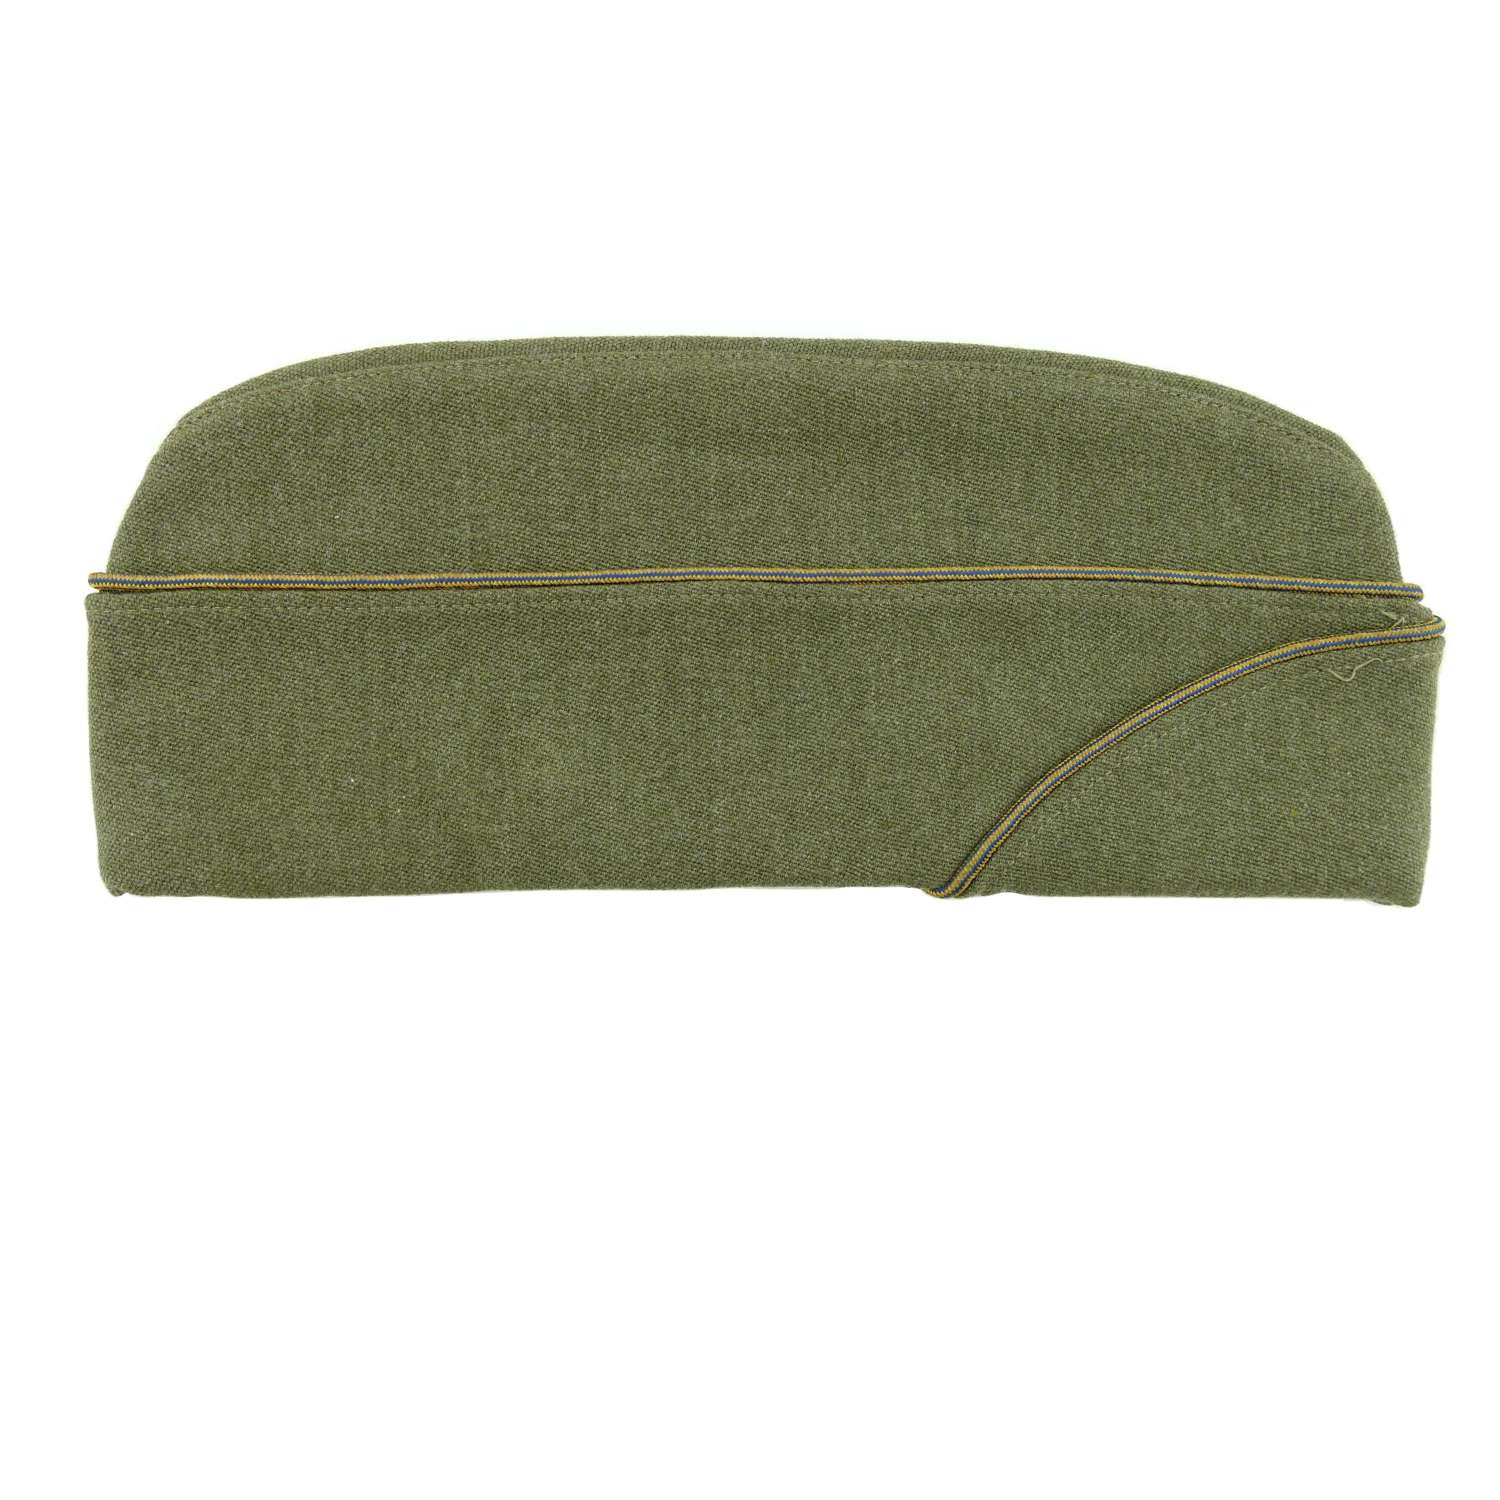 USAAF English made garrison cap